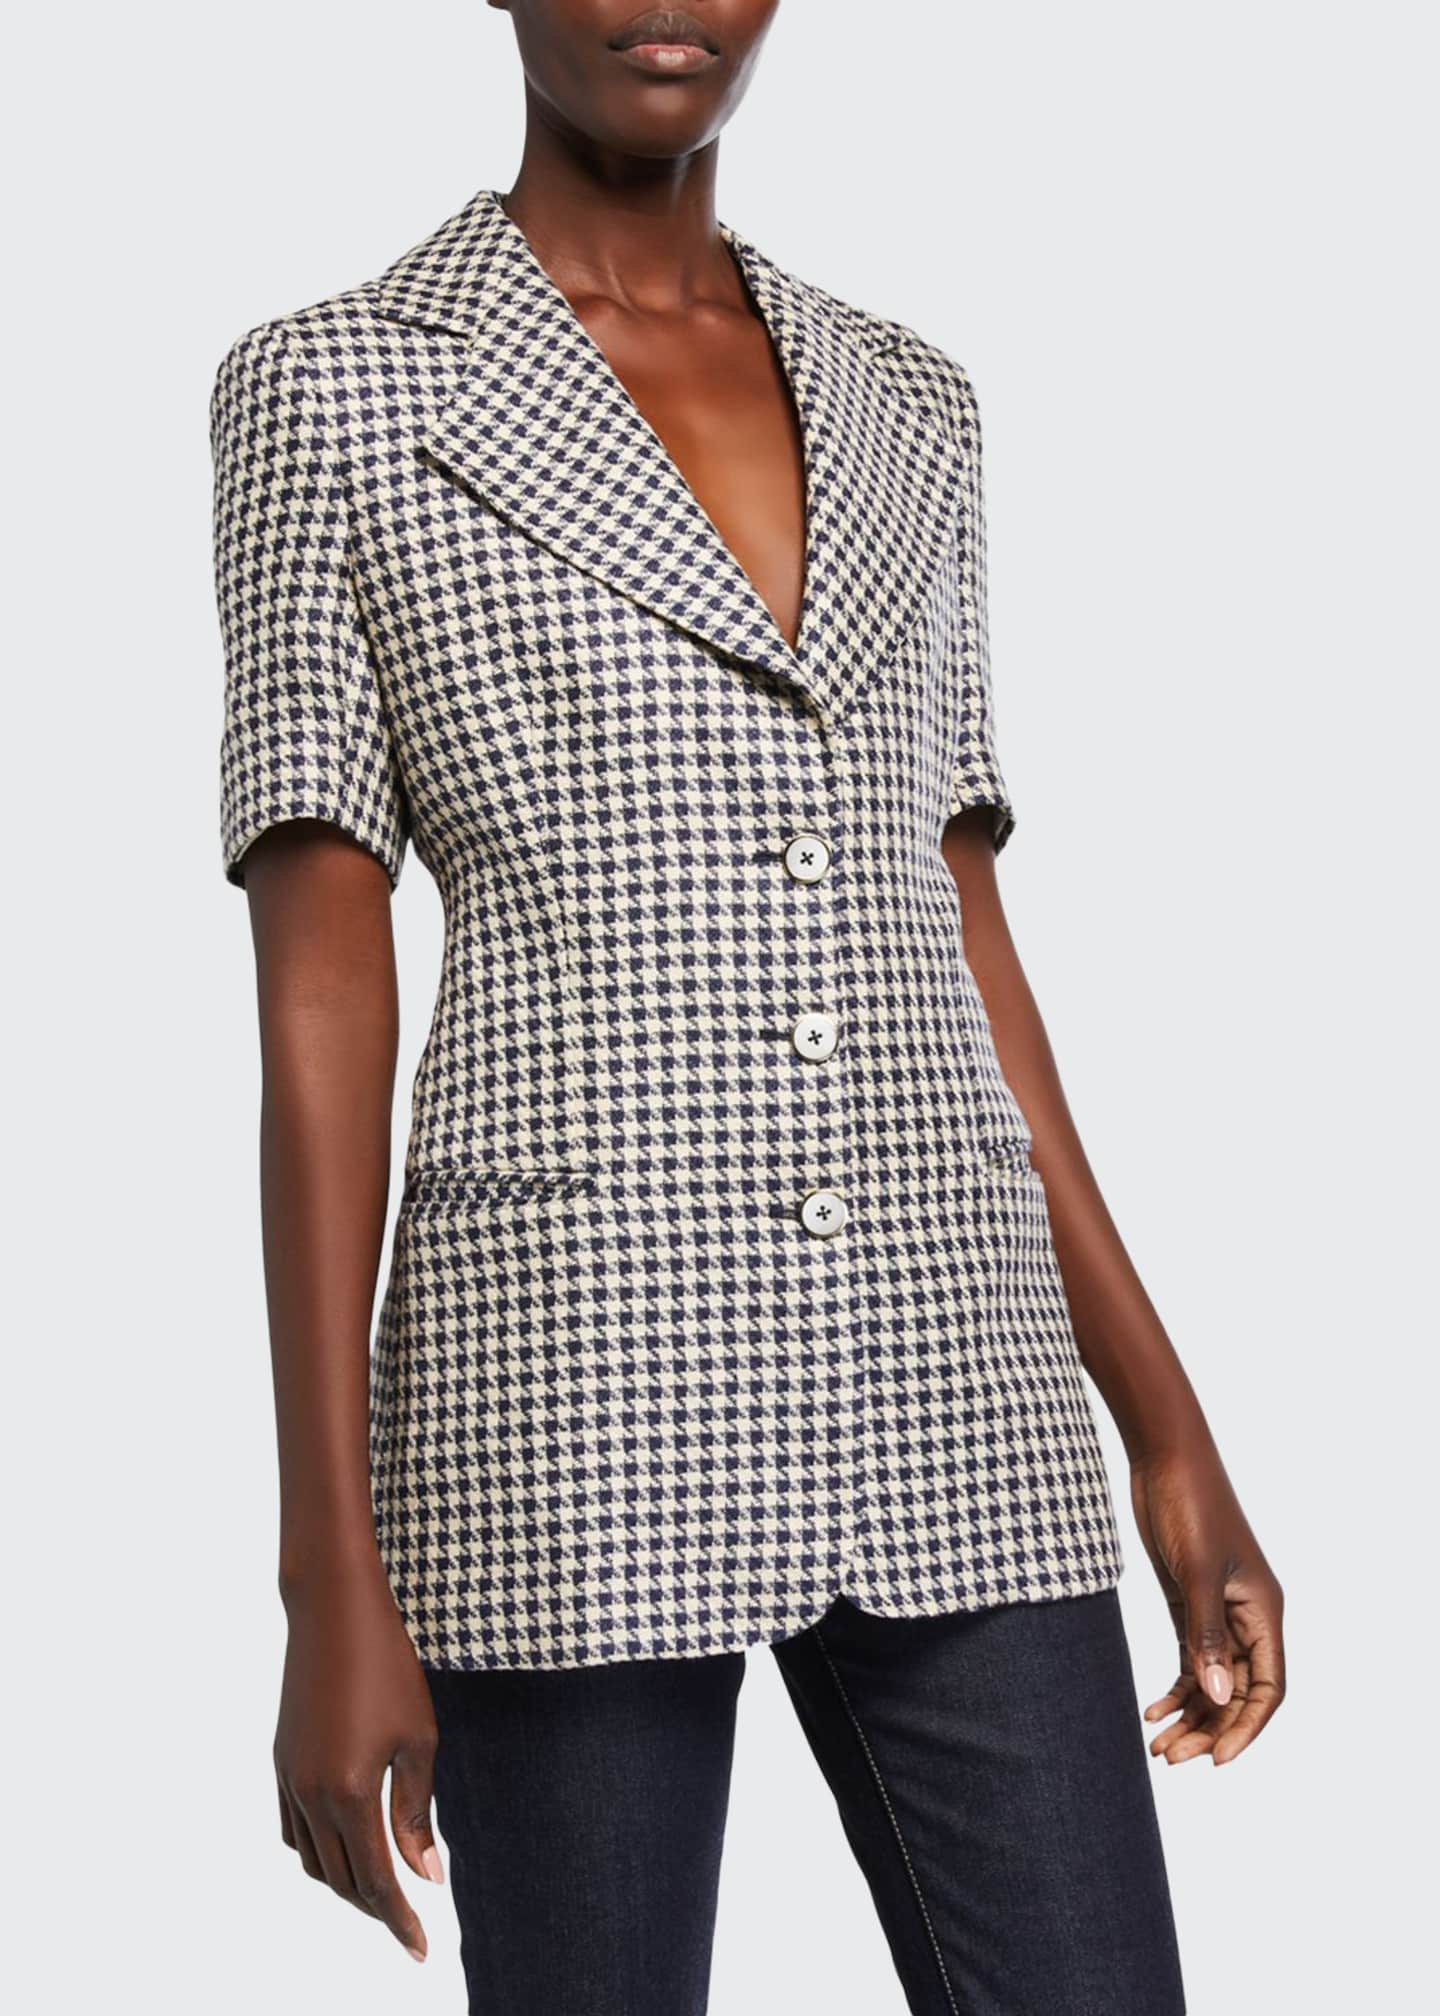 Giuliva Heritage Collection Fitted Short-Sleeve Blazer